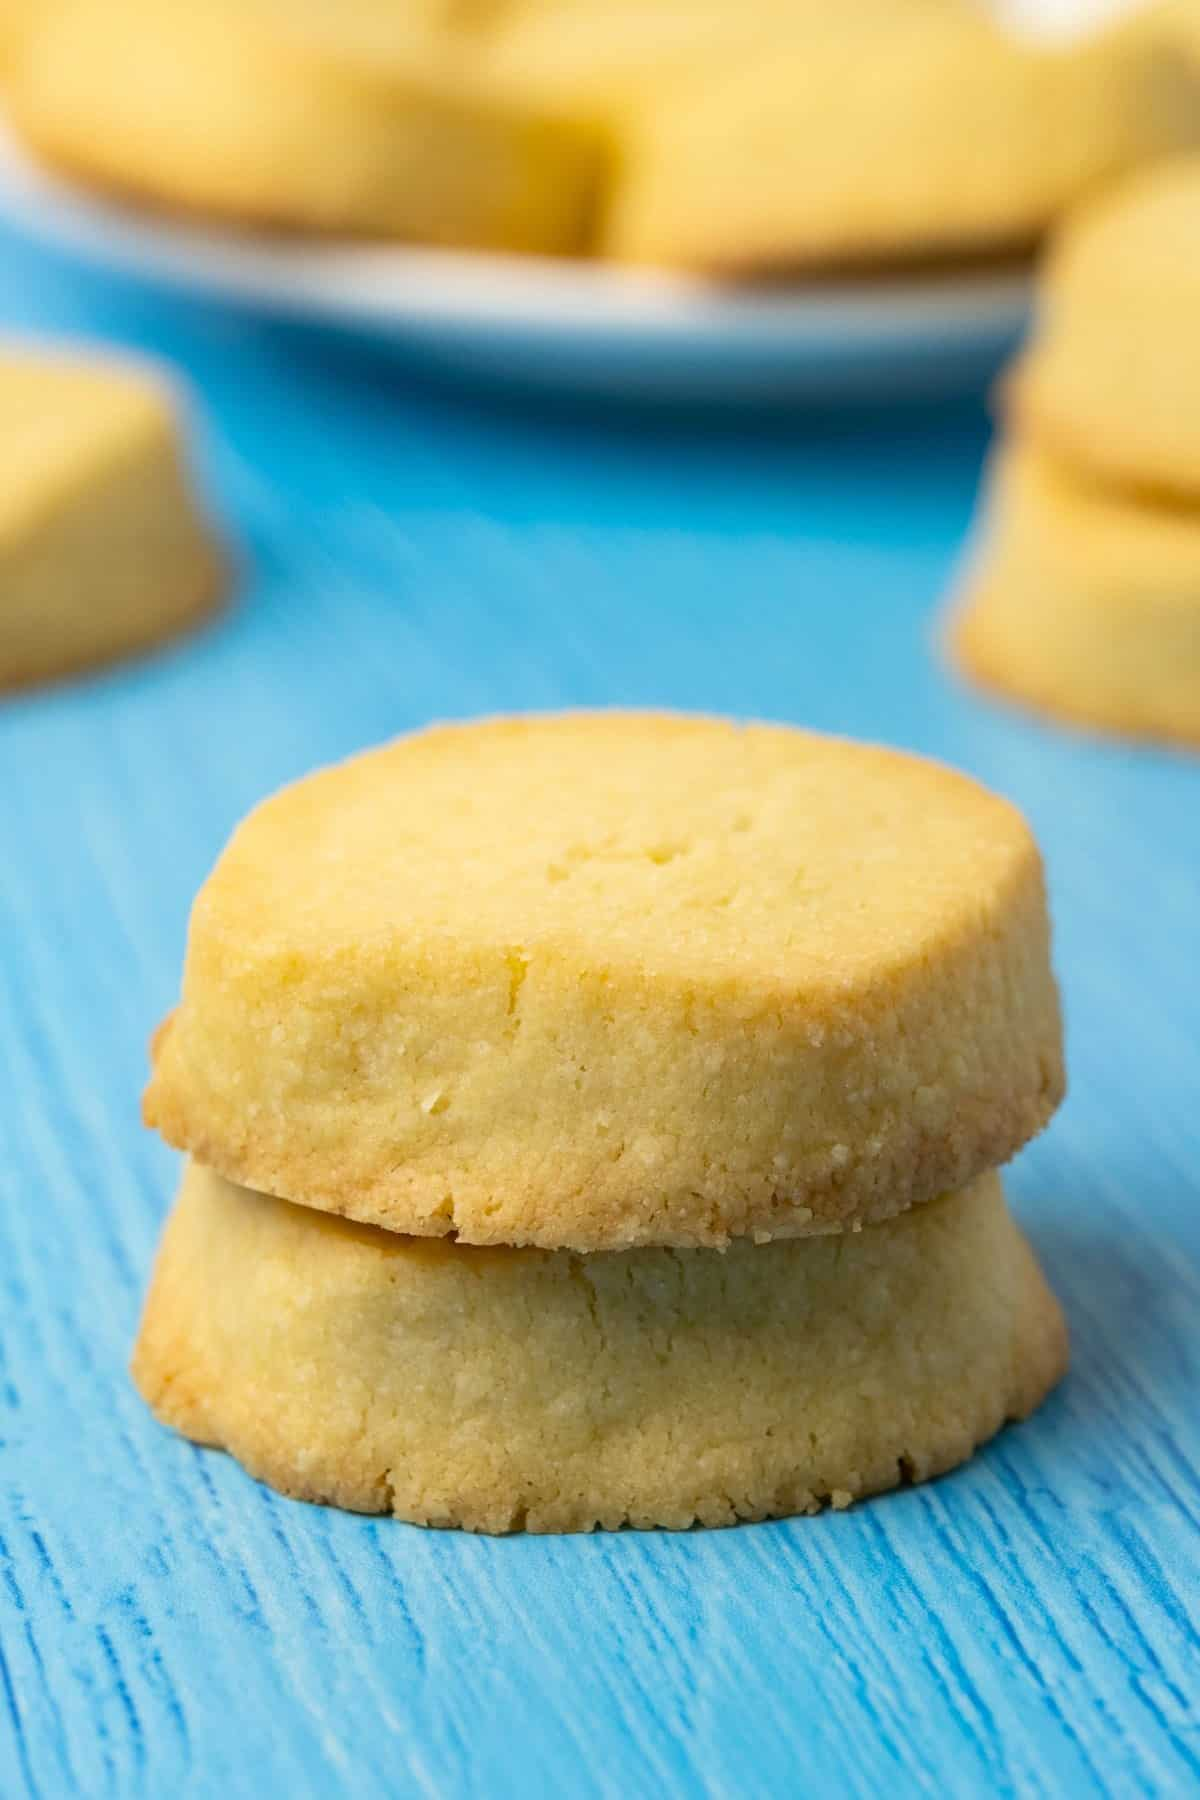 A stack of two shortbread cookies.